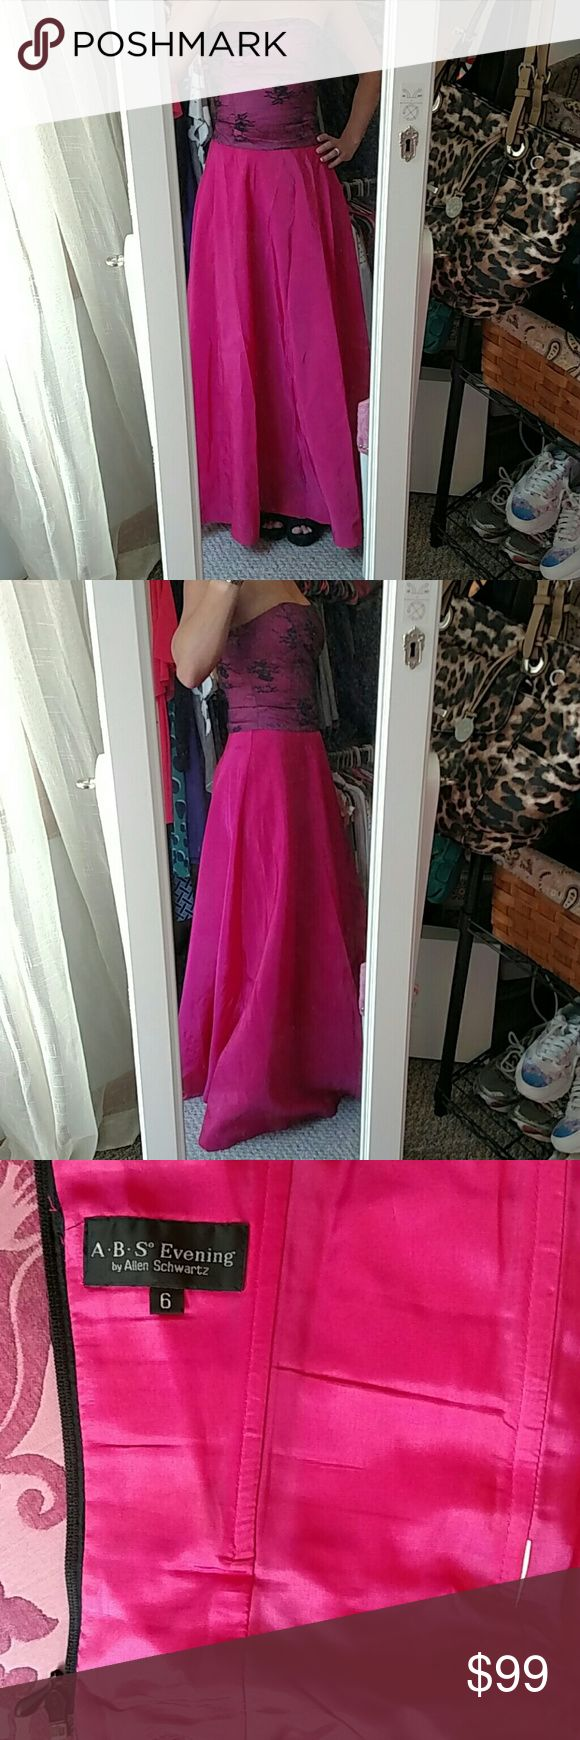 Two piece prom or evening gown This is a bright pink high waisted long skirt with a size 6 tag was cut off and a abs evening zip up boned corset top bright pink under black lace with some black sparkle beading. This is years old got a a Saks discount store. Skirt needs a steaming to get wrinkles out ABS Allen Schwartz Dresses Prom